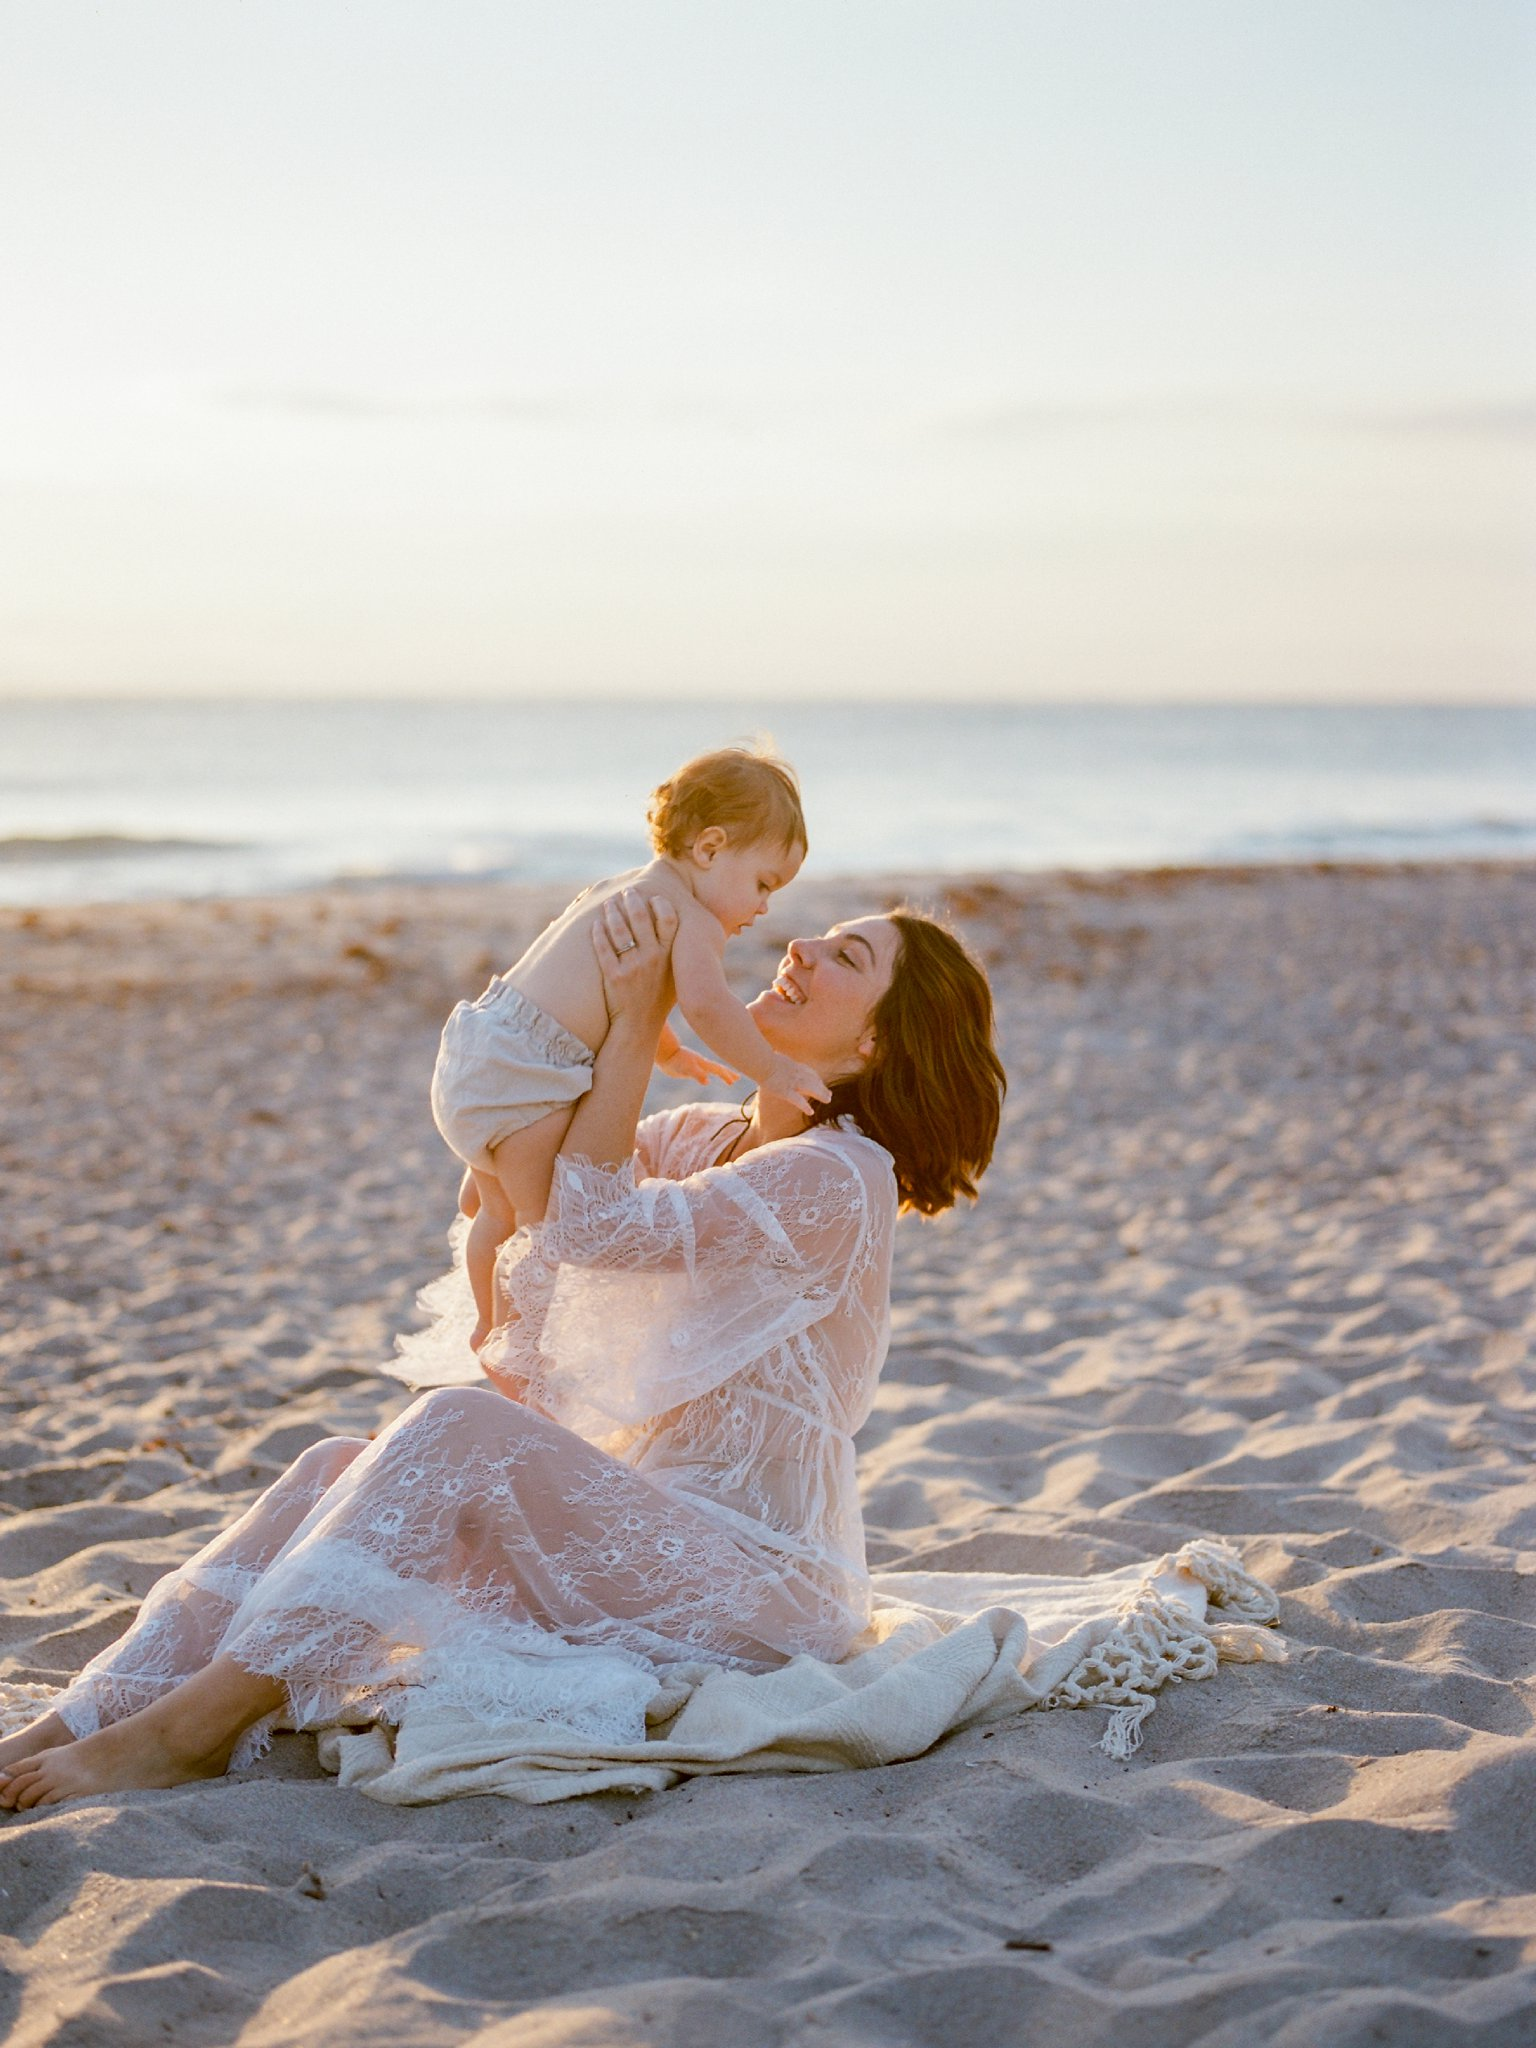 boca raton family photographer boca raton photographer shannon griffin photography_0012.jpg